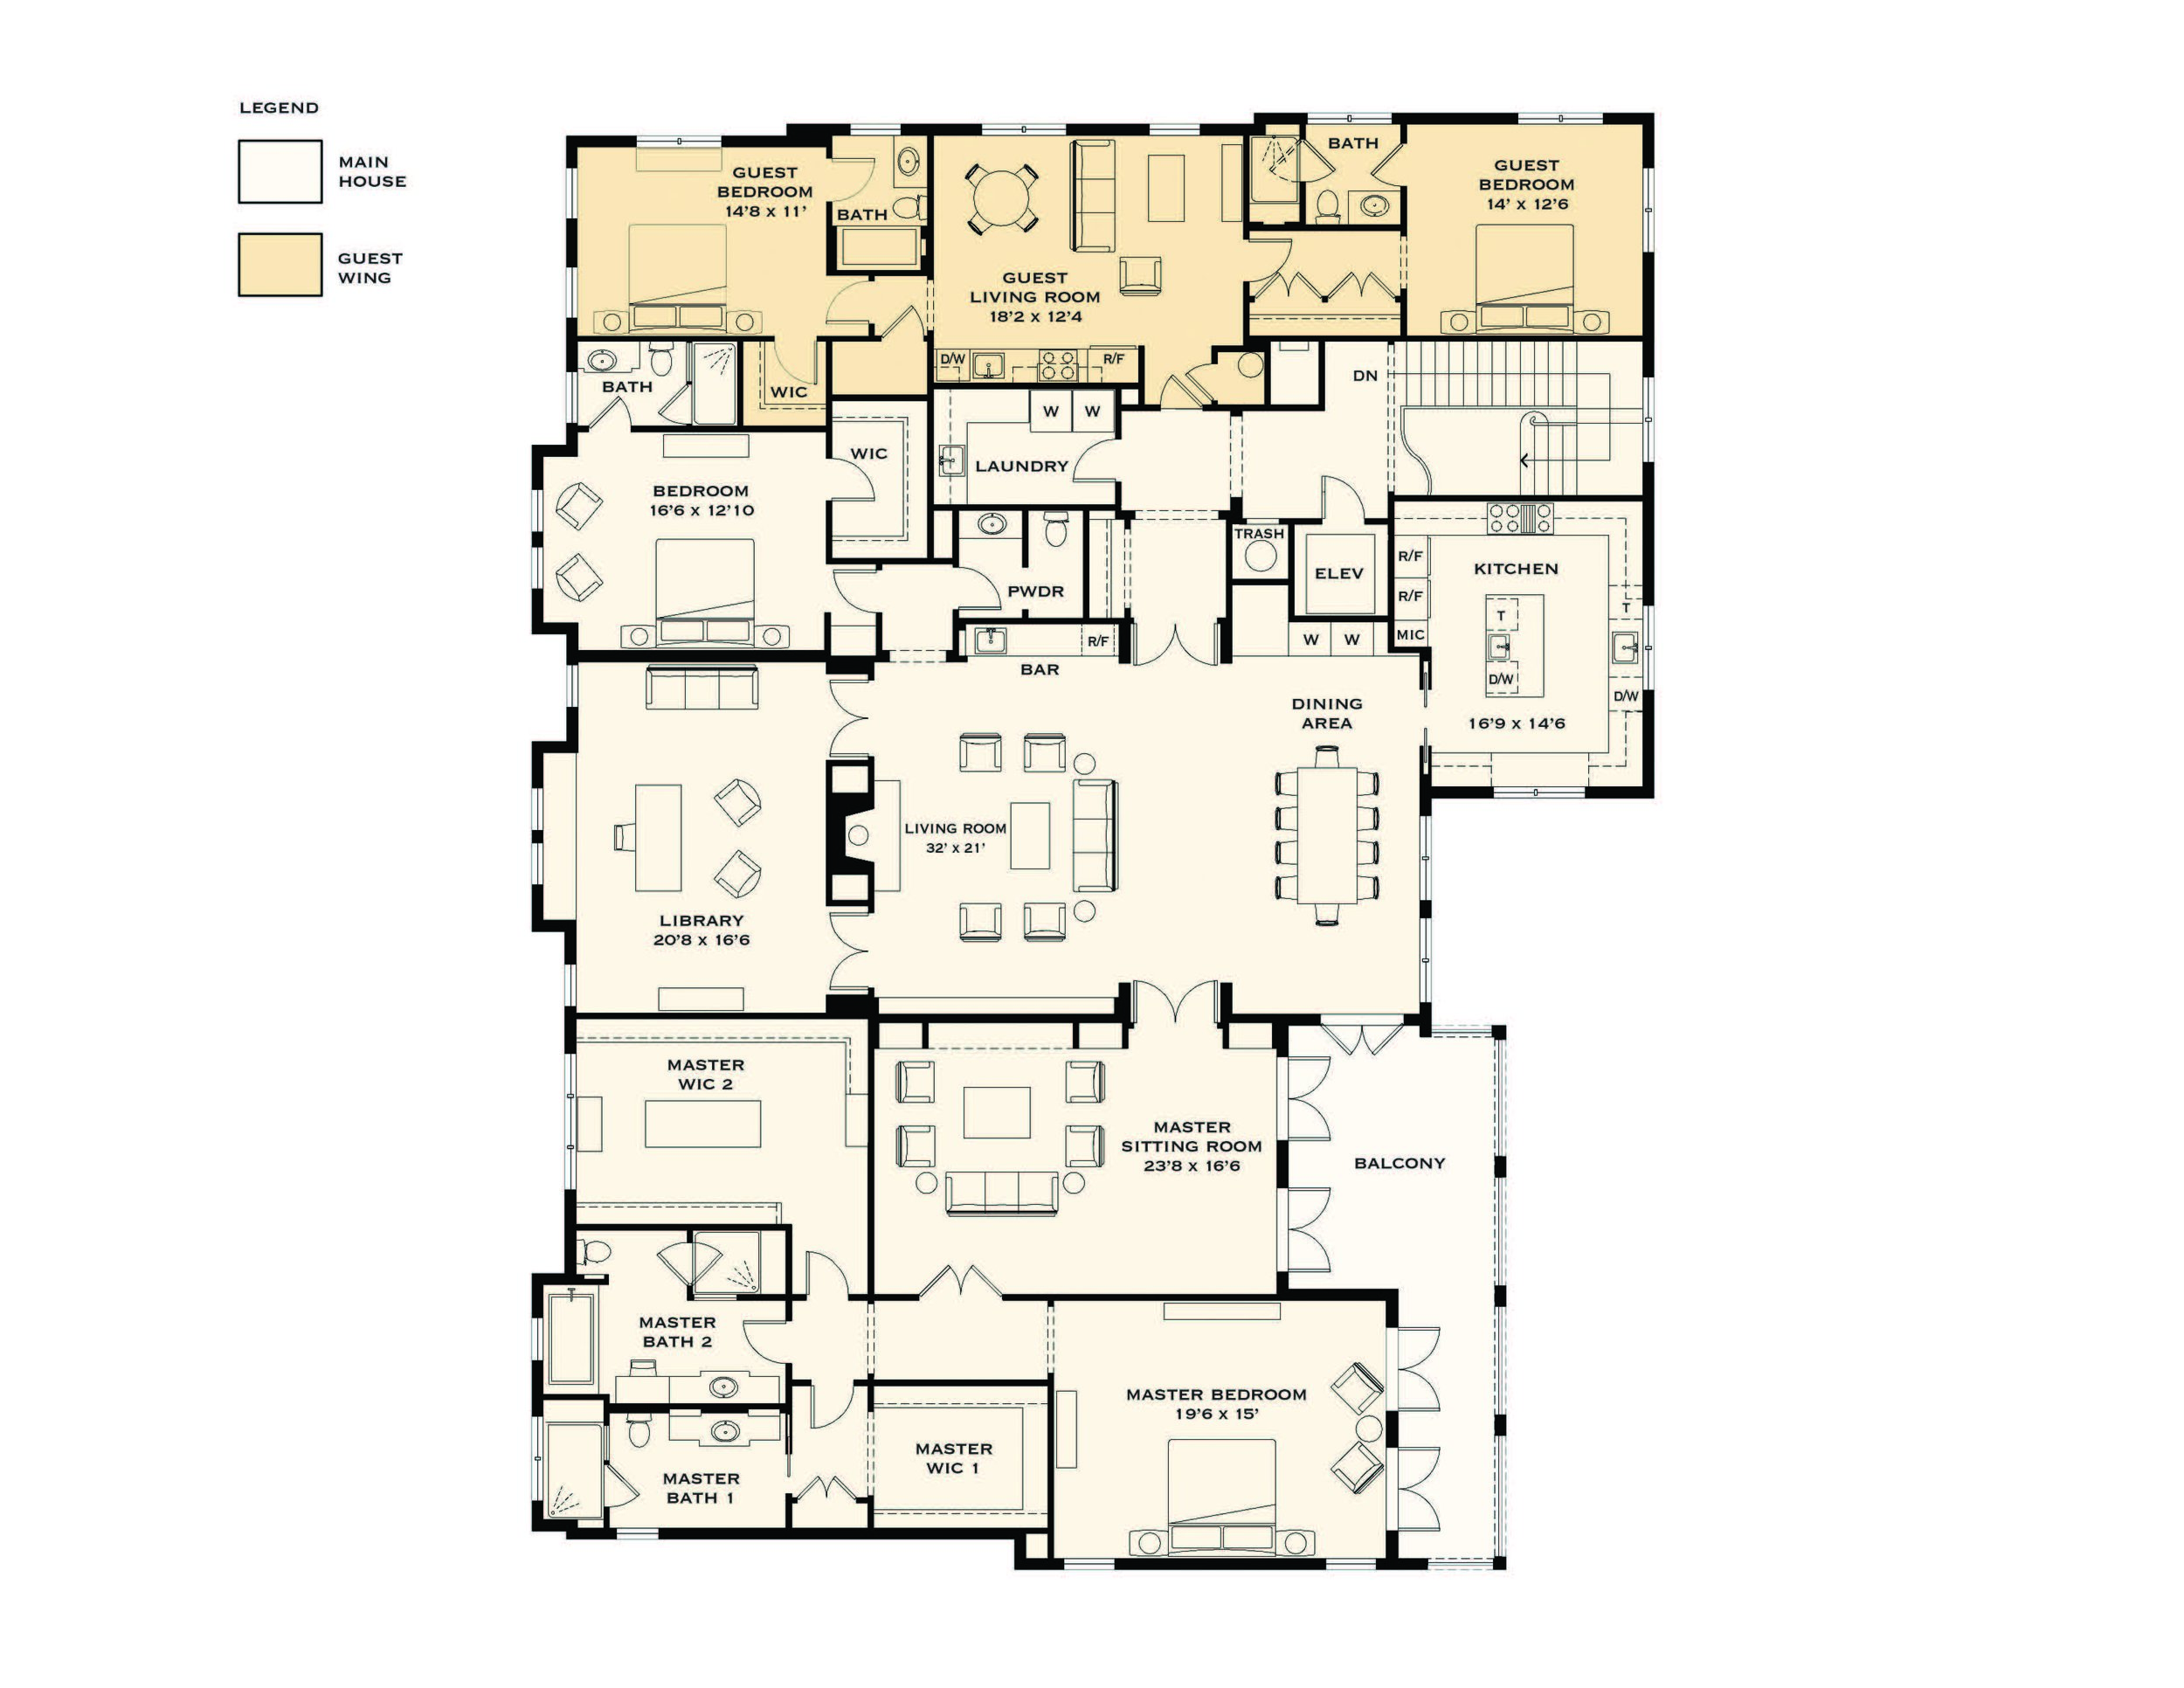 Residence 4 Floor Plan 2nd Floor.jpg